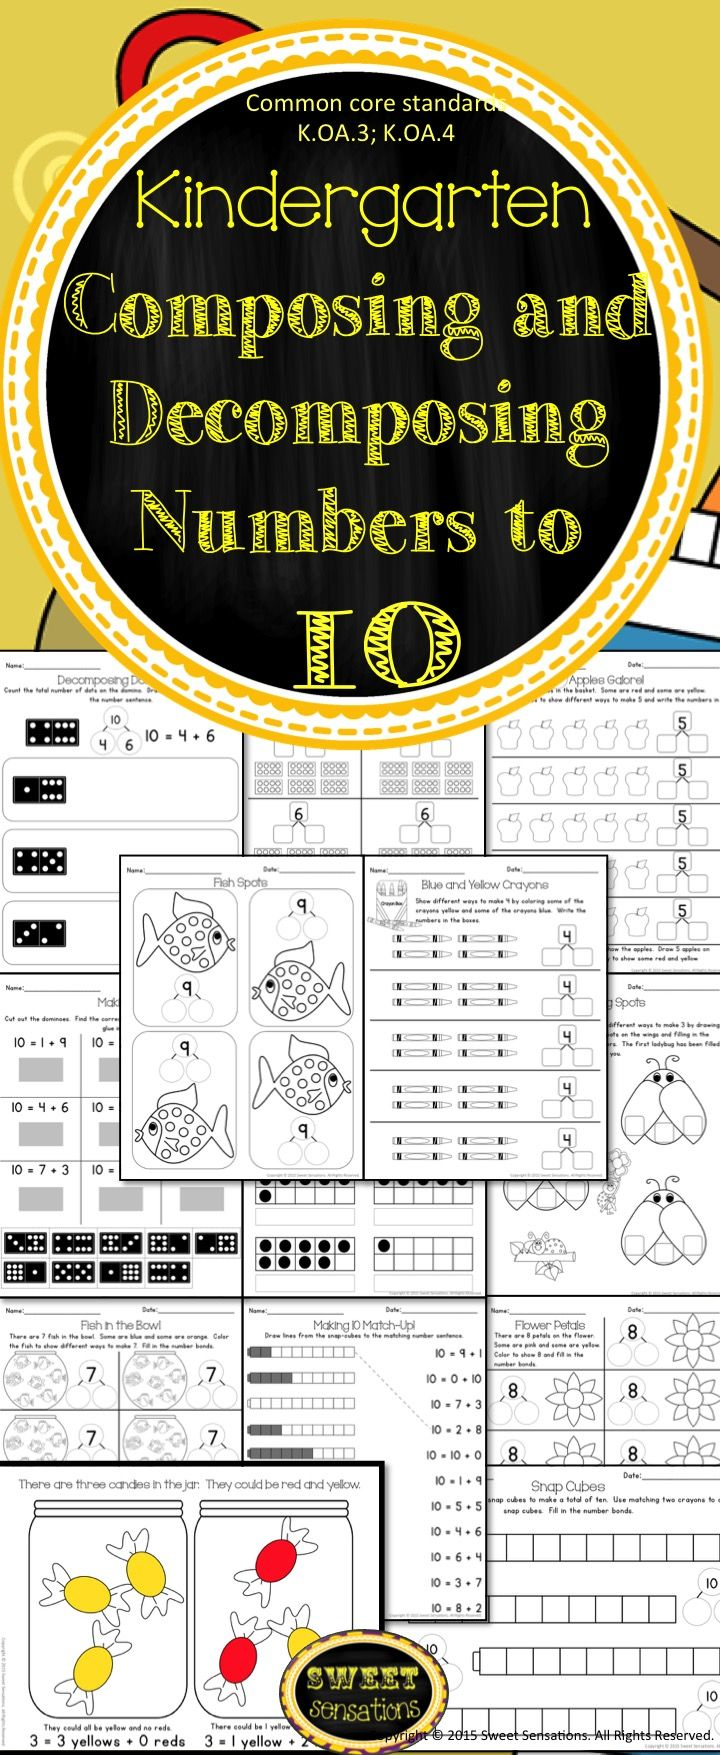 Tons of practice for decomposing numbers less than or equal to 10 and finding the number that makes 10 when added to a given number. Common Core standards: K.OA.3; K.OA.4